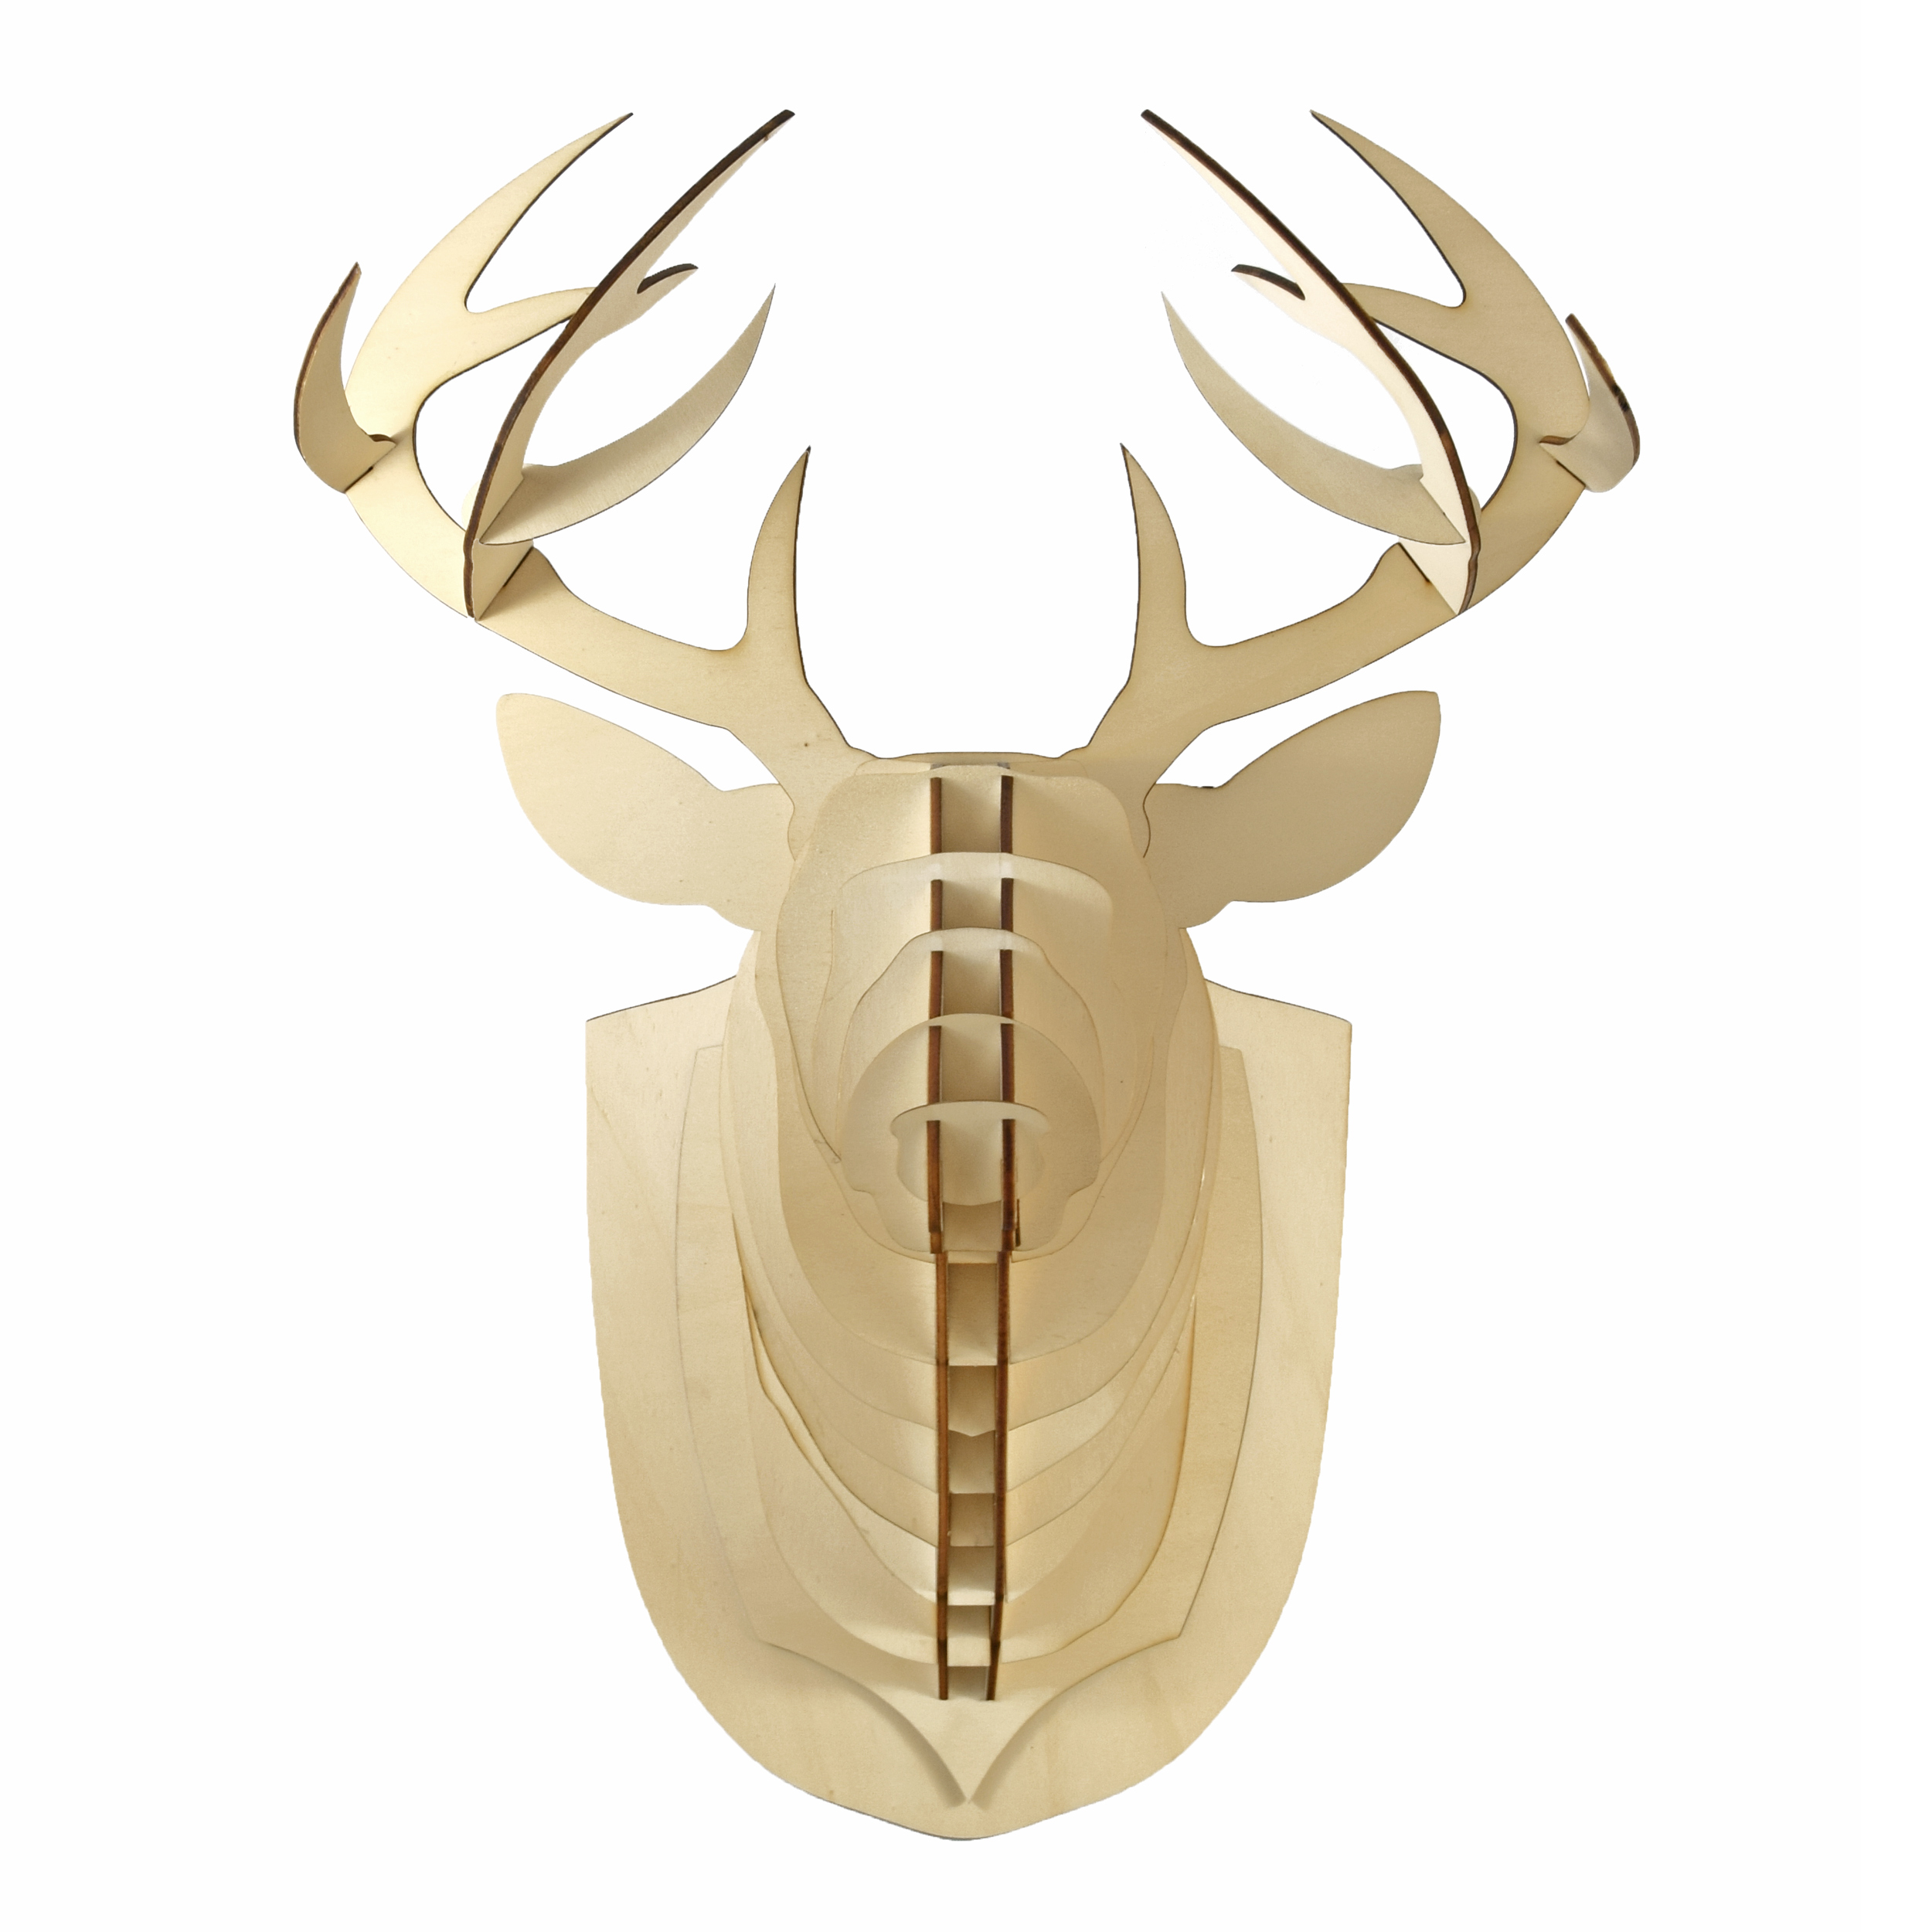 Deer head wooden trophy